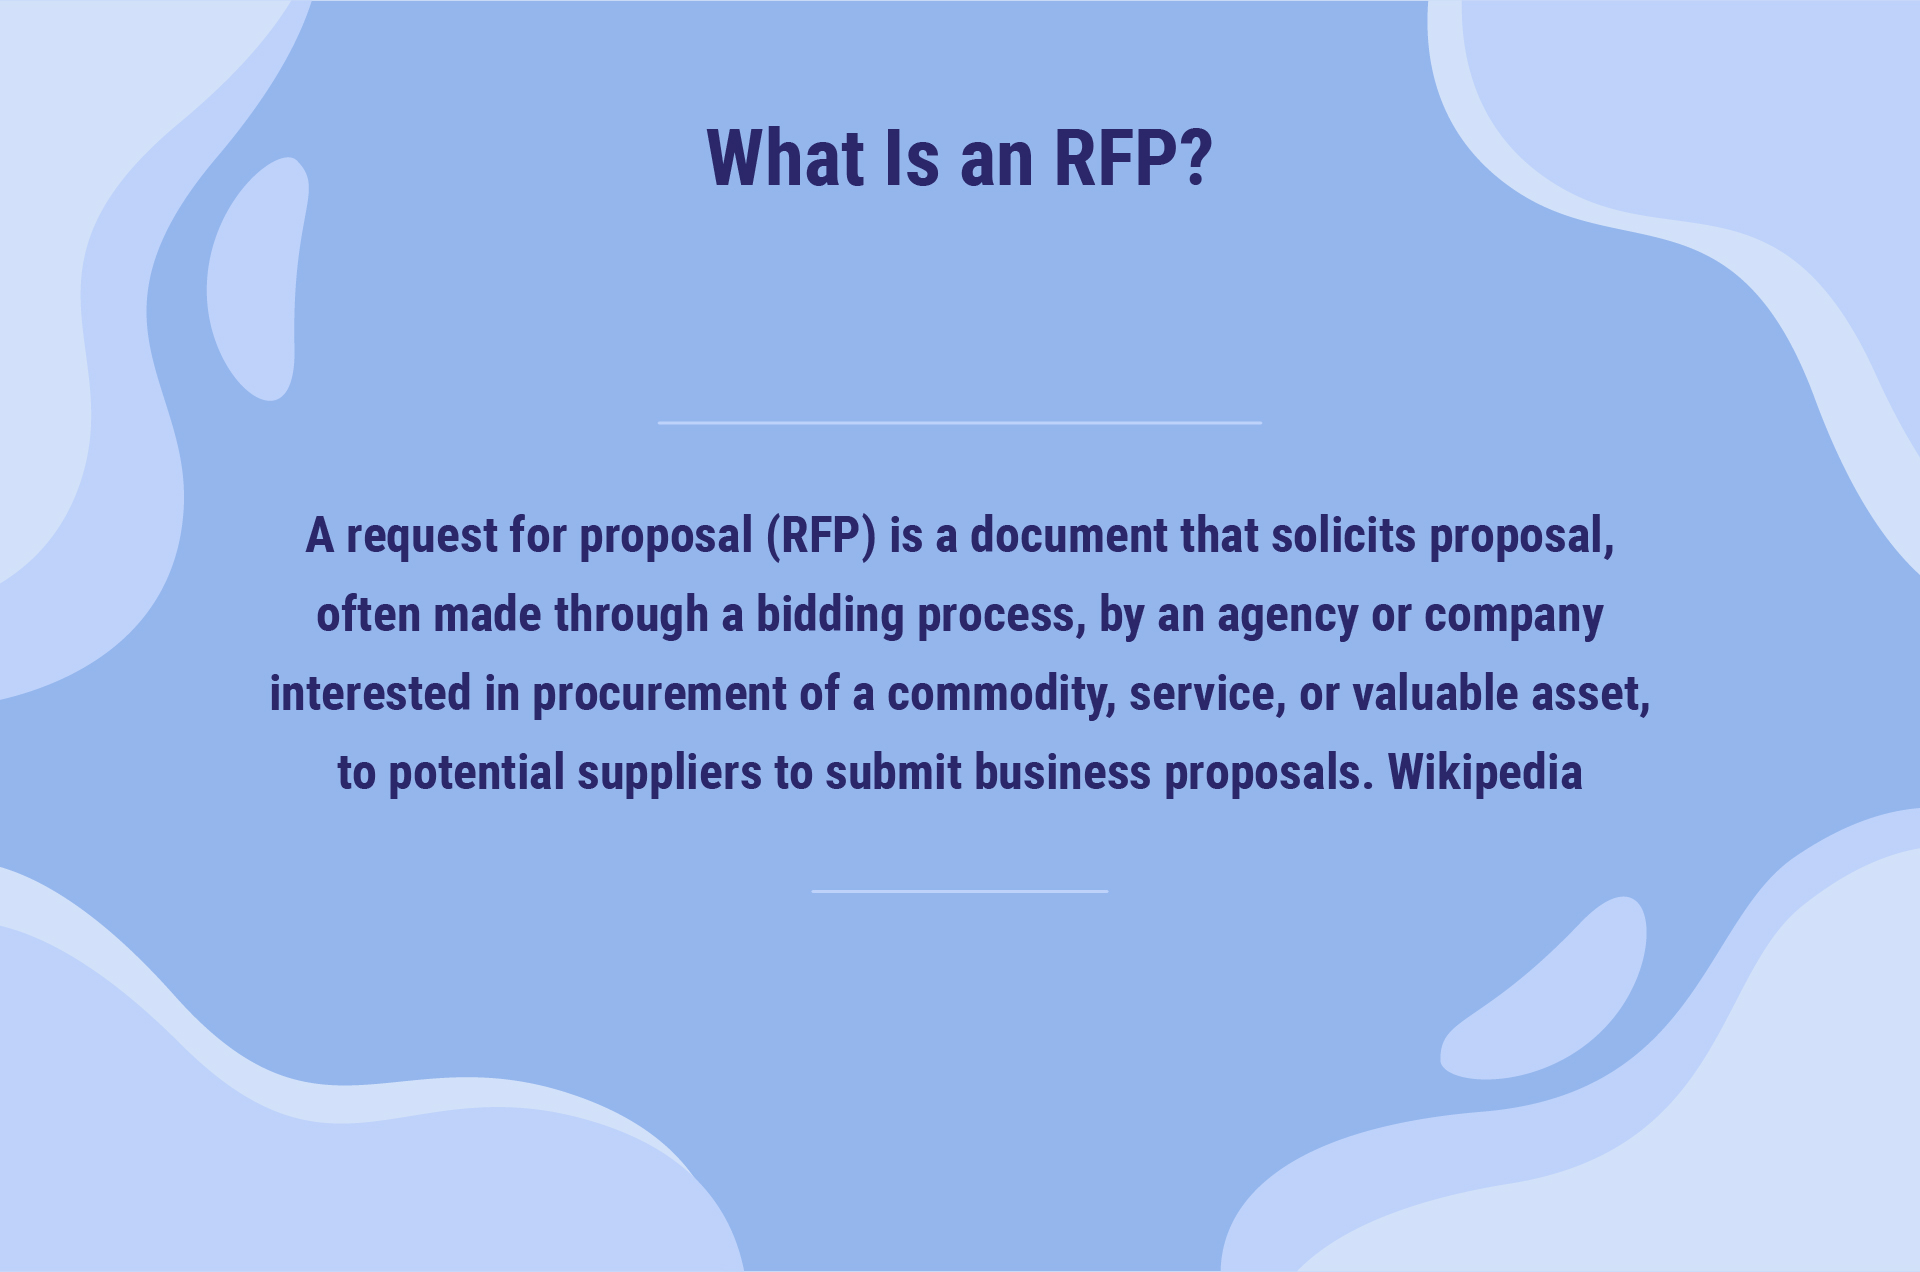 wikipedia definition of RFP